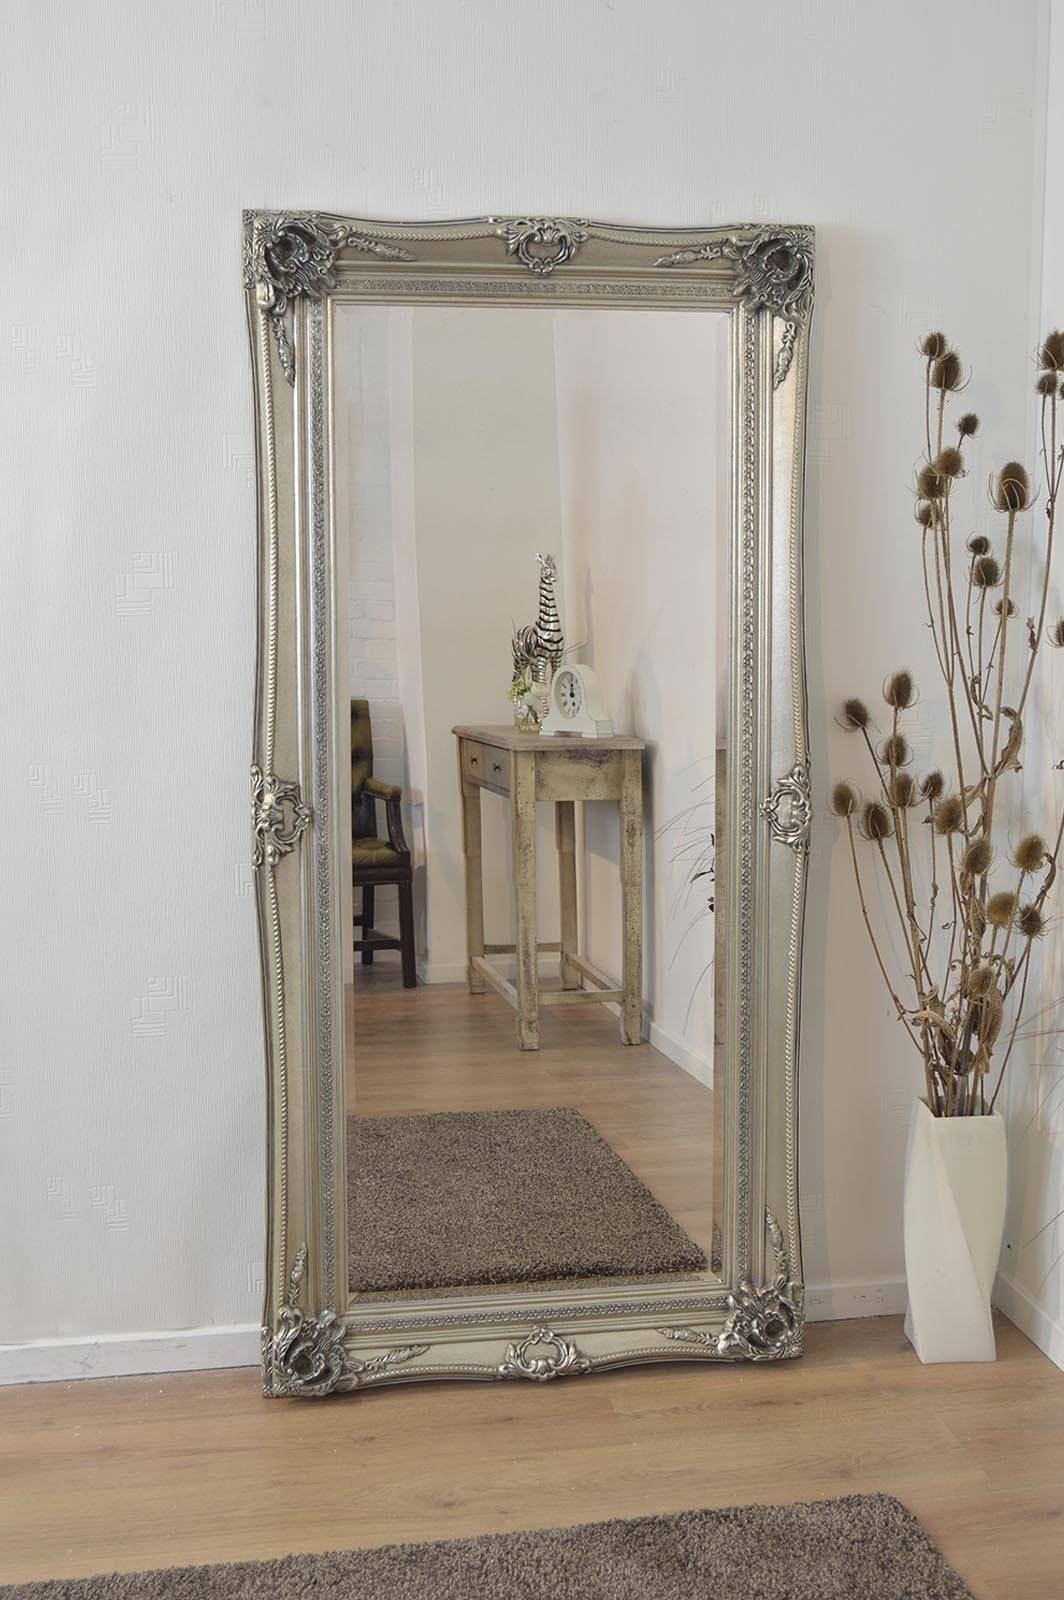 Large Antique Wall Mirror Ornate Frame Antique Ornate Wall Mirrors with regard to Vintage Shabby Chic Mirrors (Image 12 of 25)